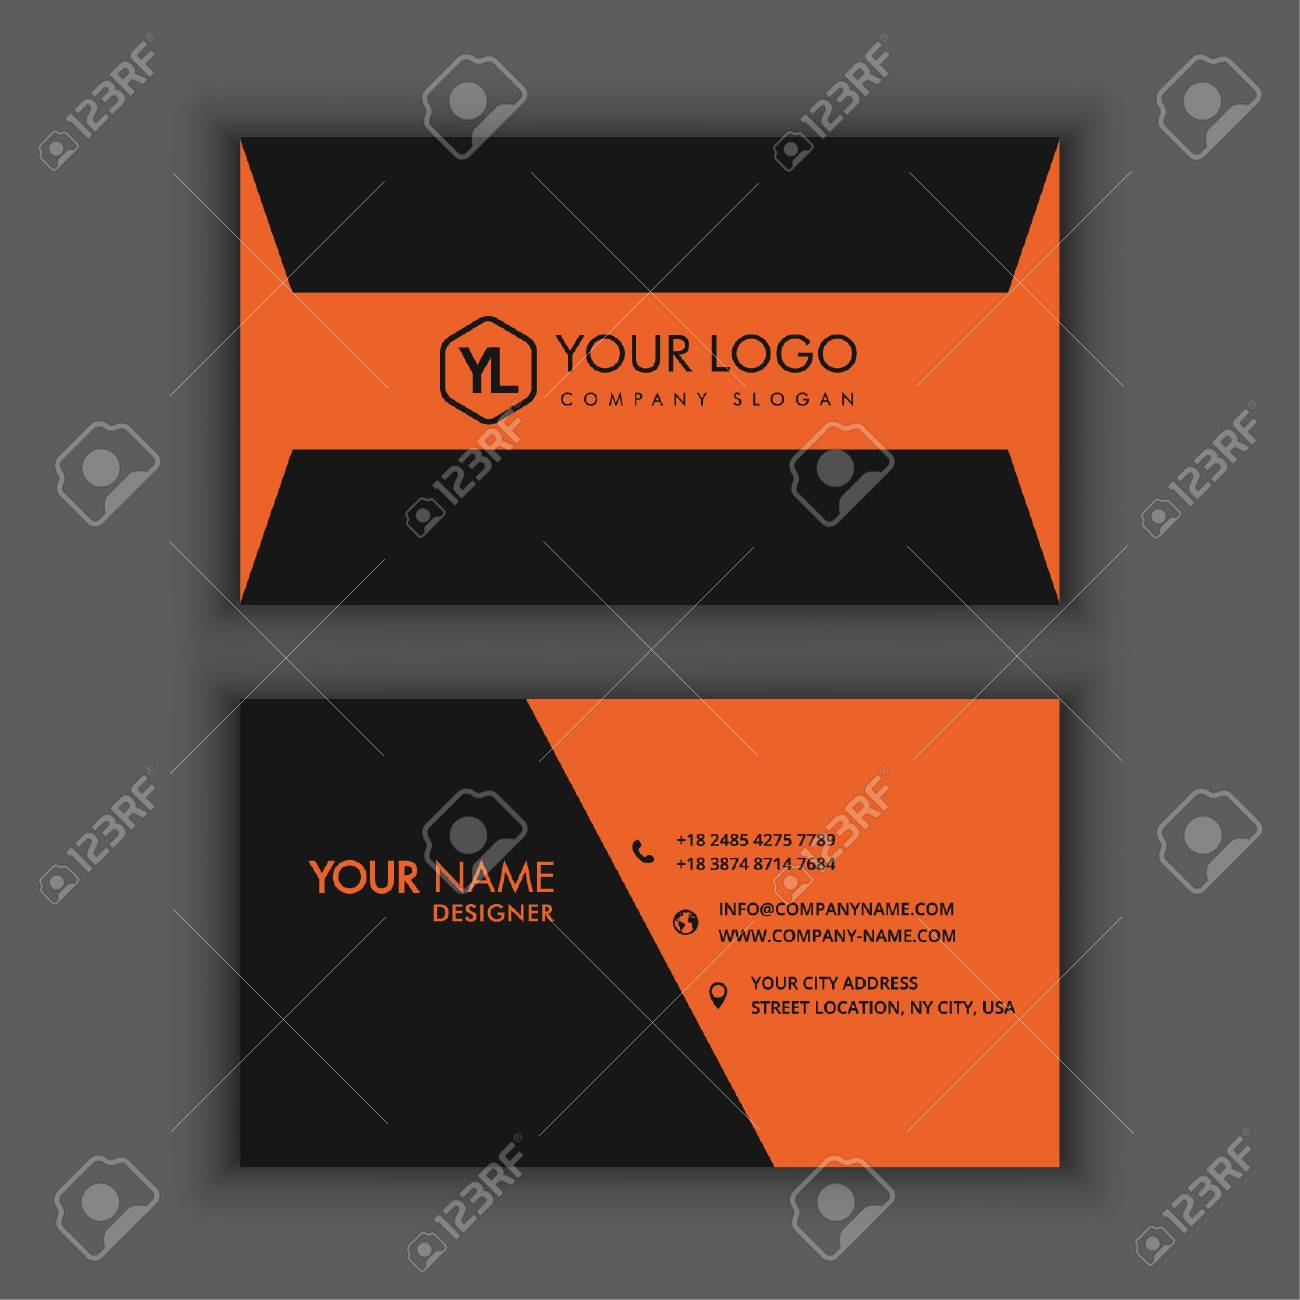 Modern Creative And Clean Business Card Template With Orange ...